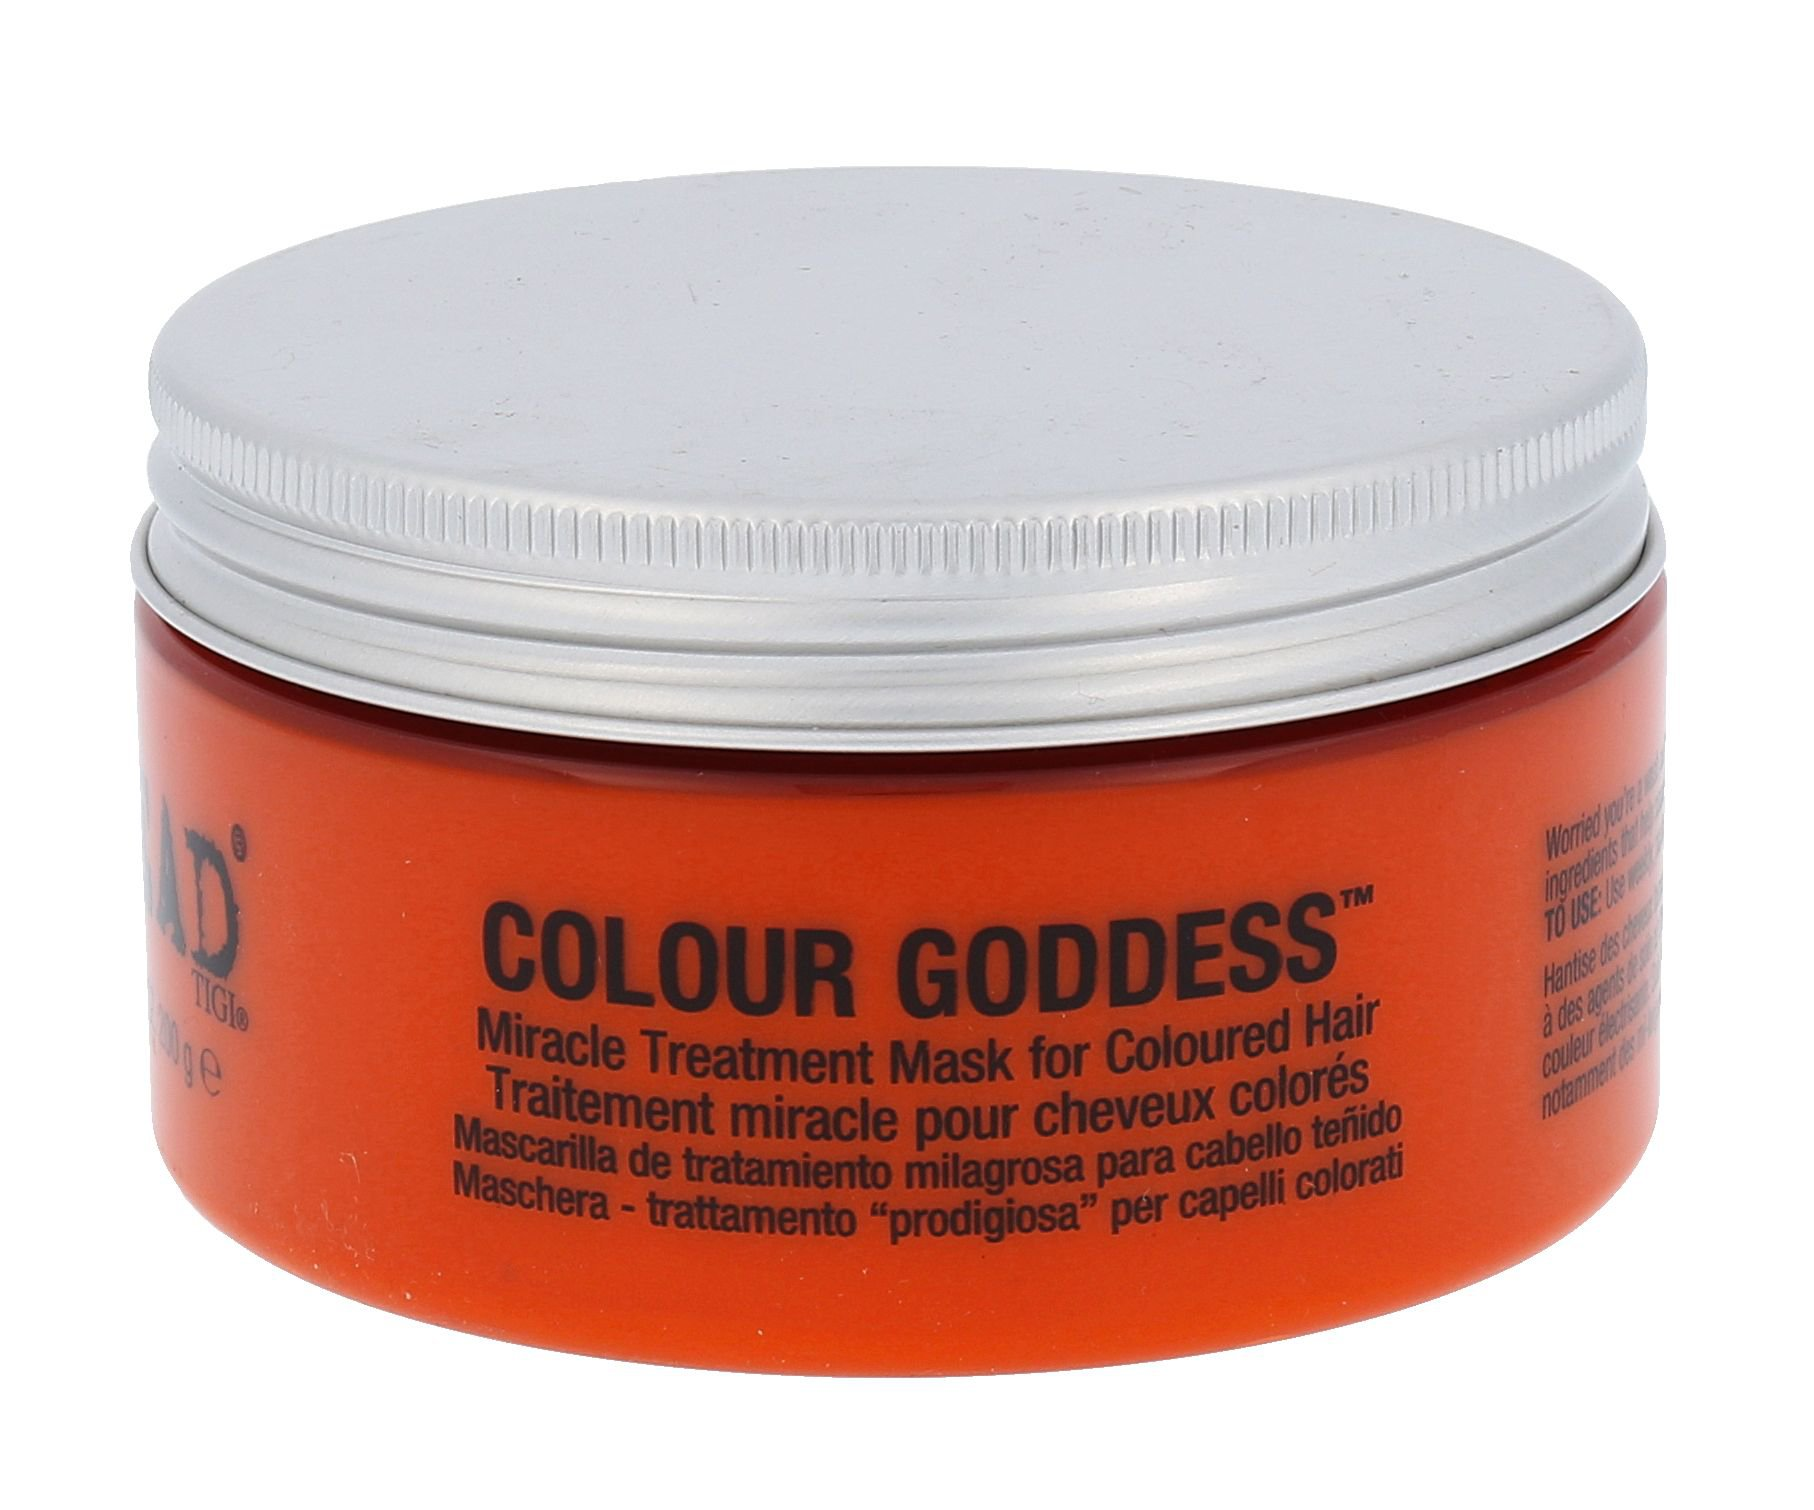 Tigi Bed Head Colour Goddess, Maska na vlasy 200g